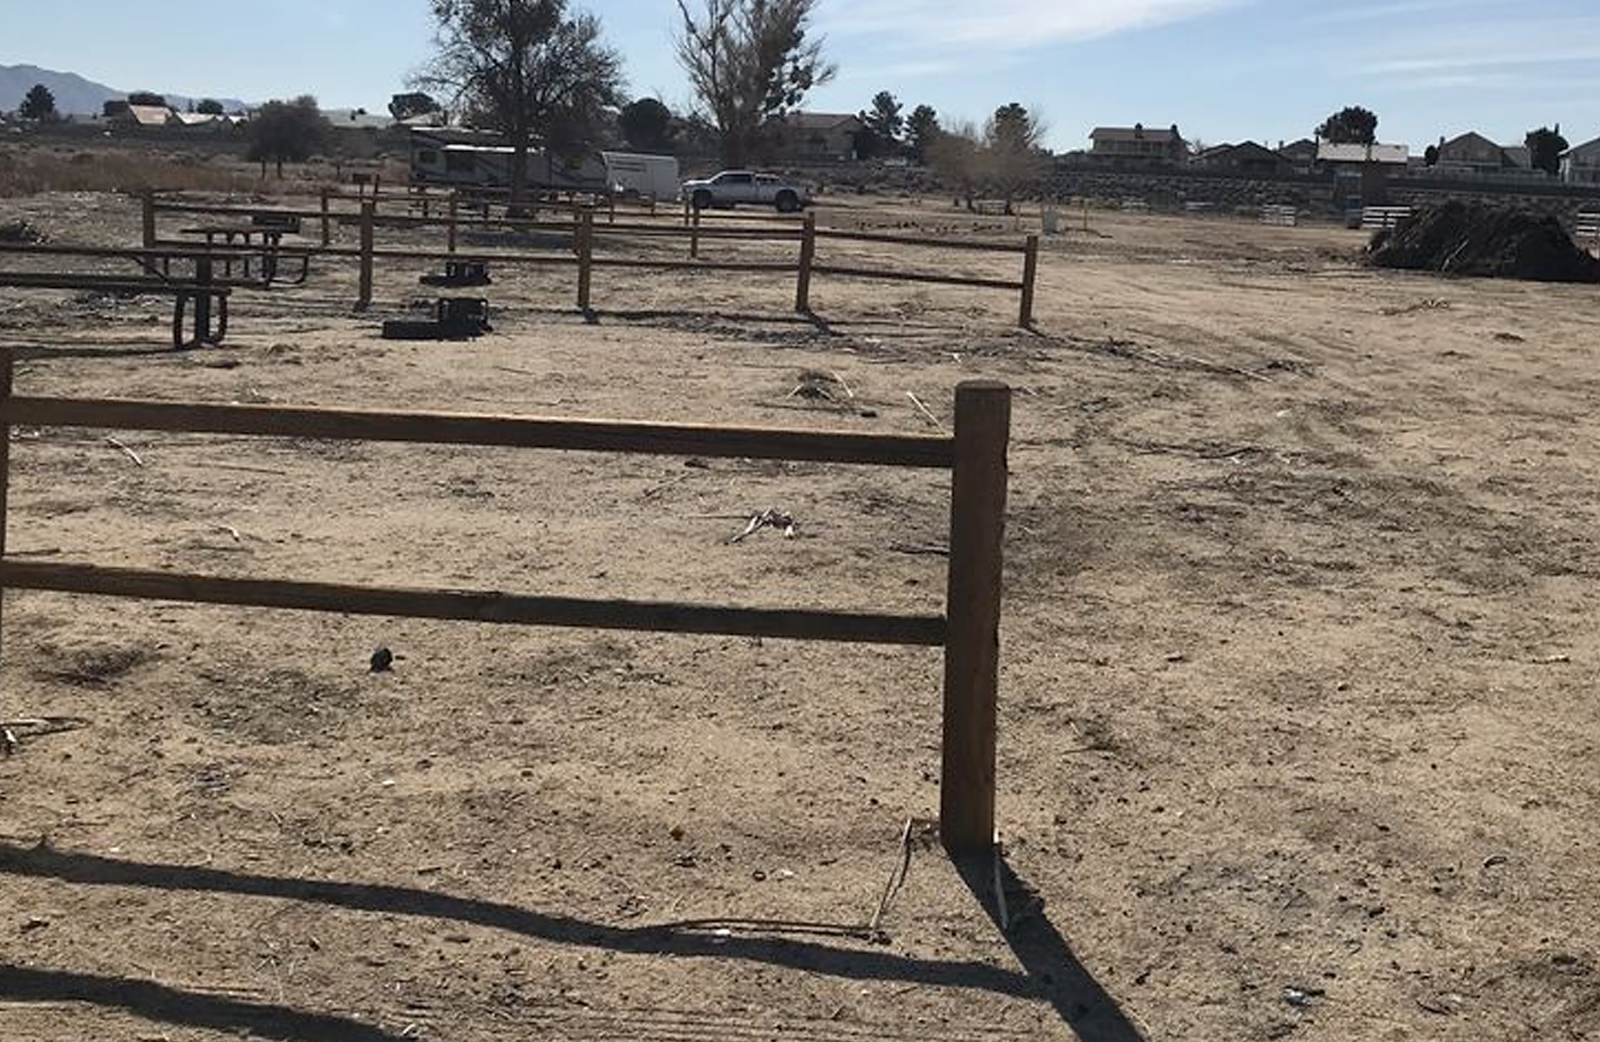 Empty dirt horse stalls at Mojave Narrows camp site.